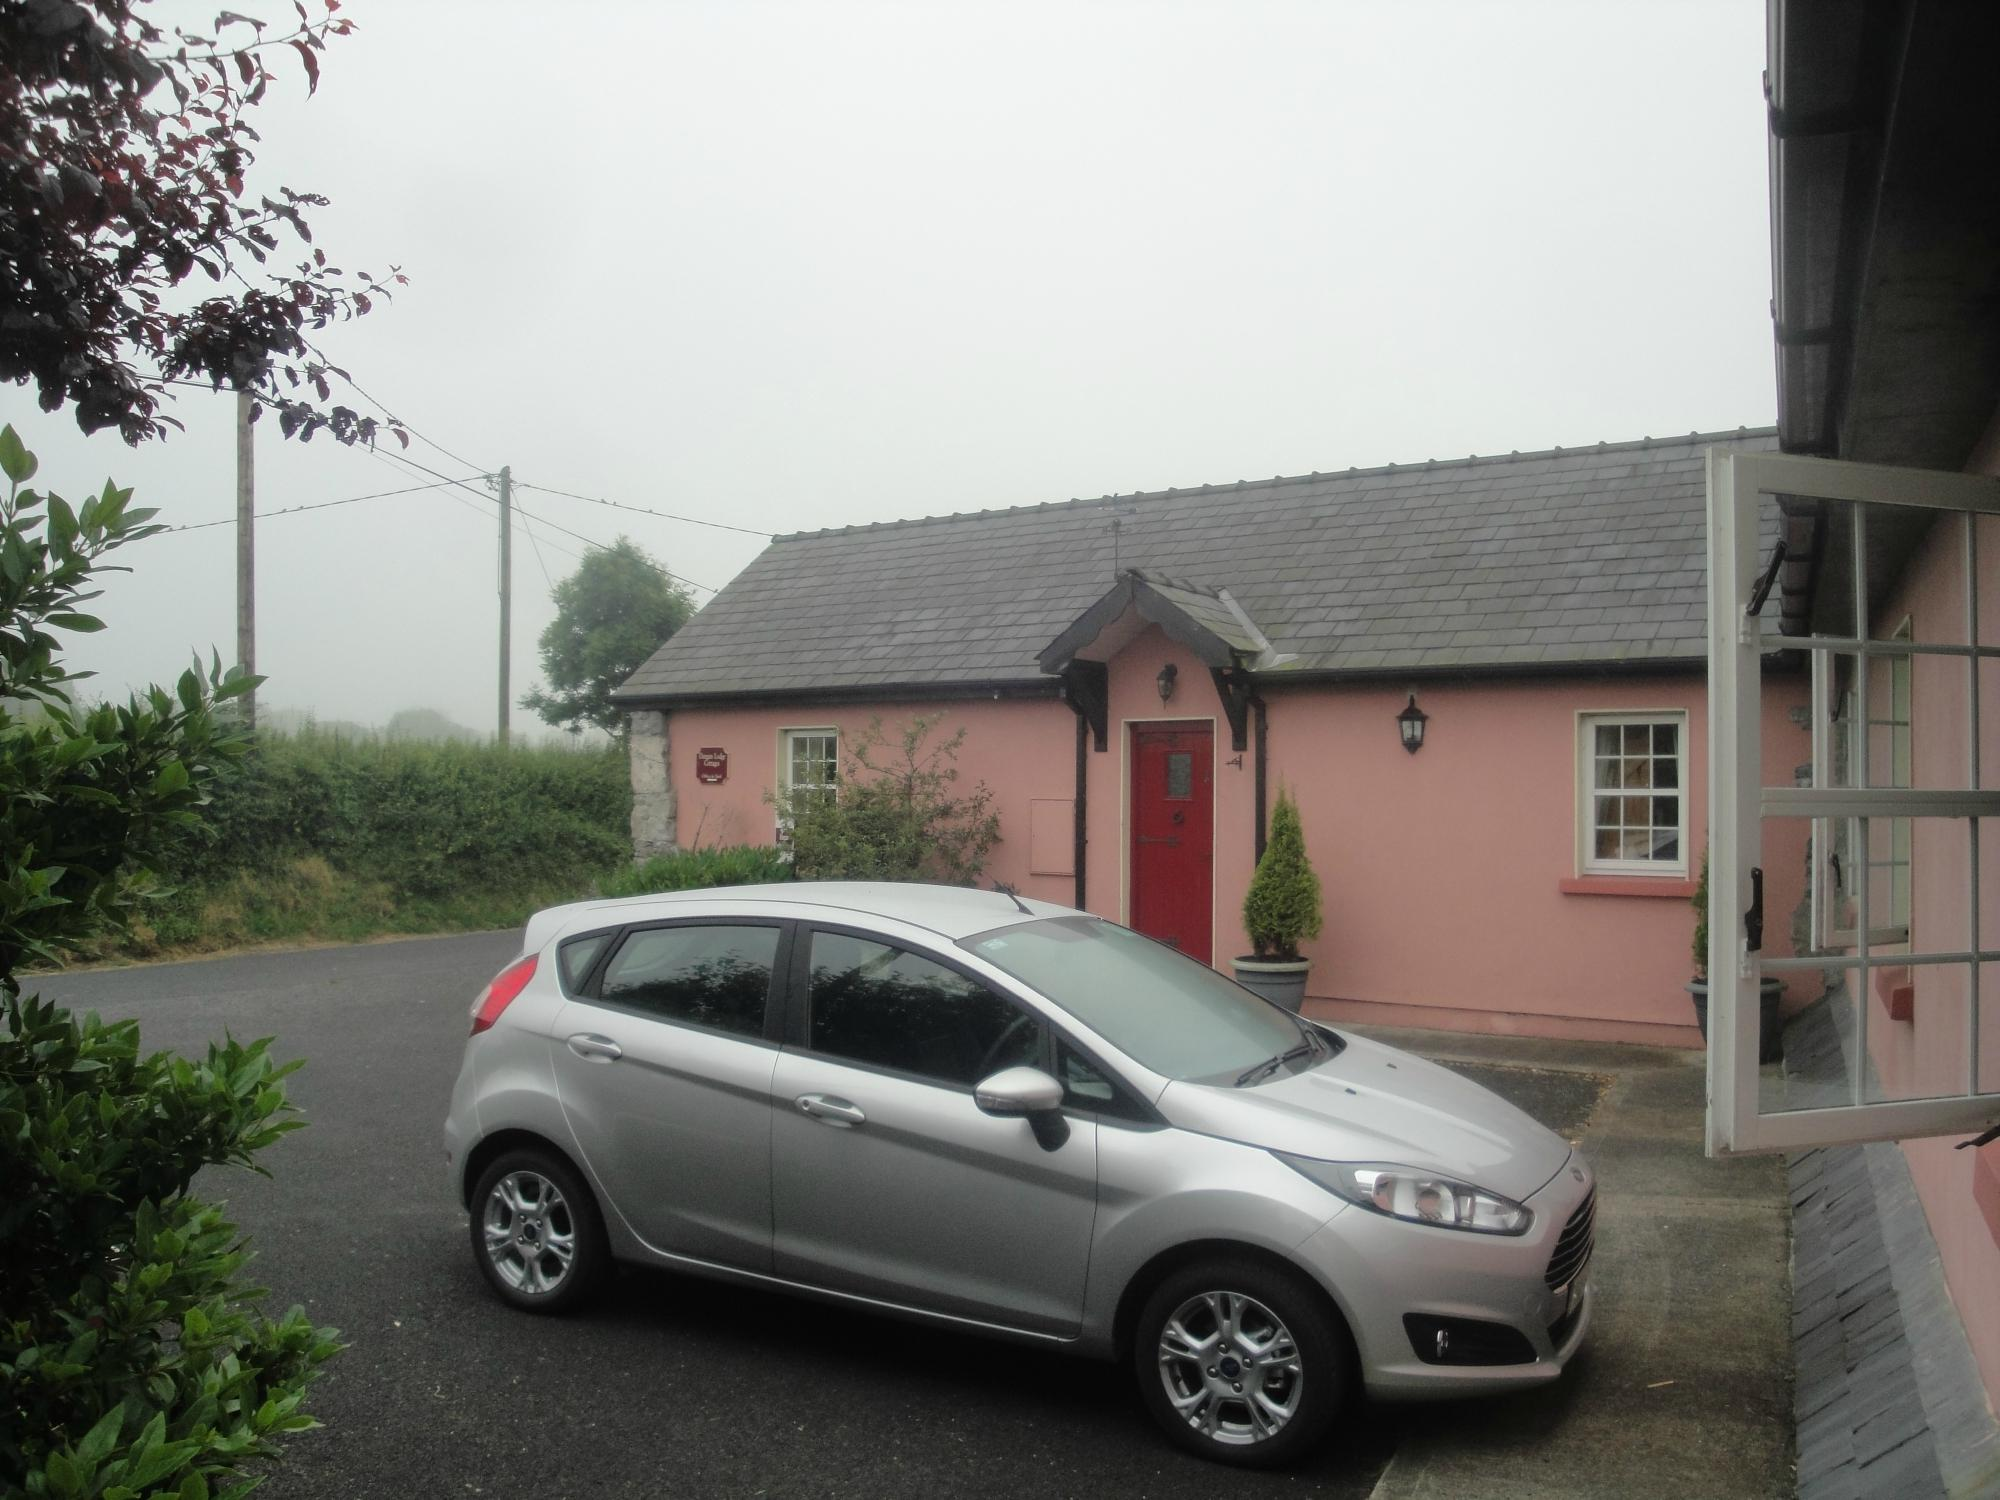 Dangan Lodge Cottages